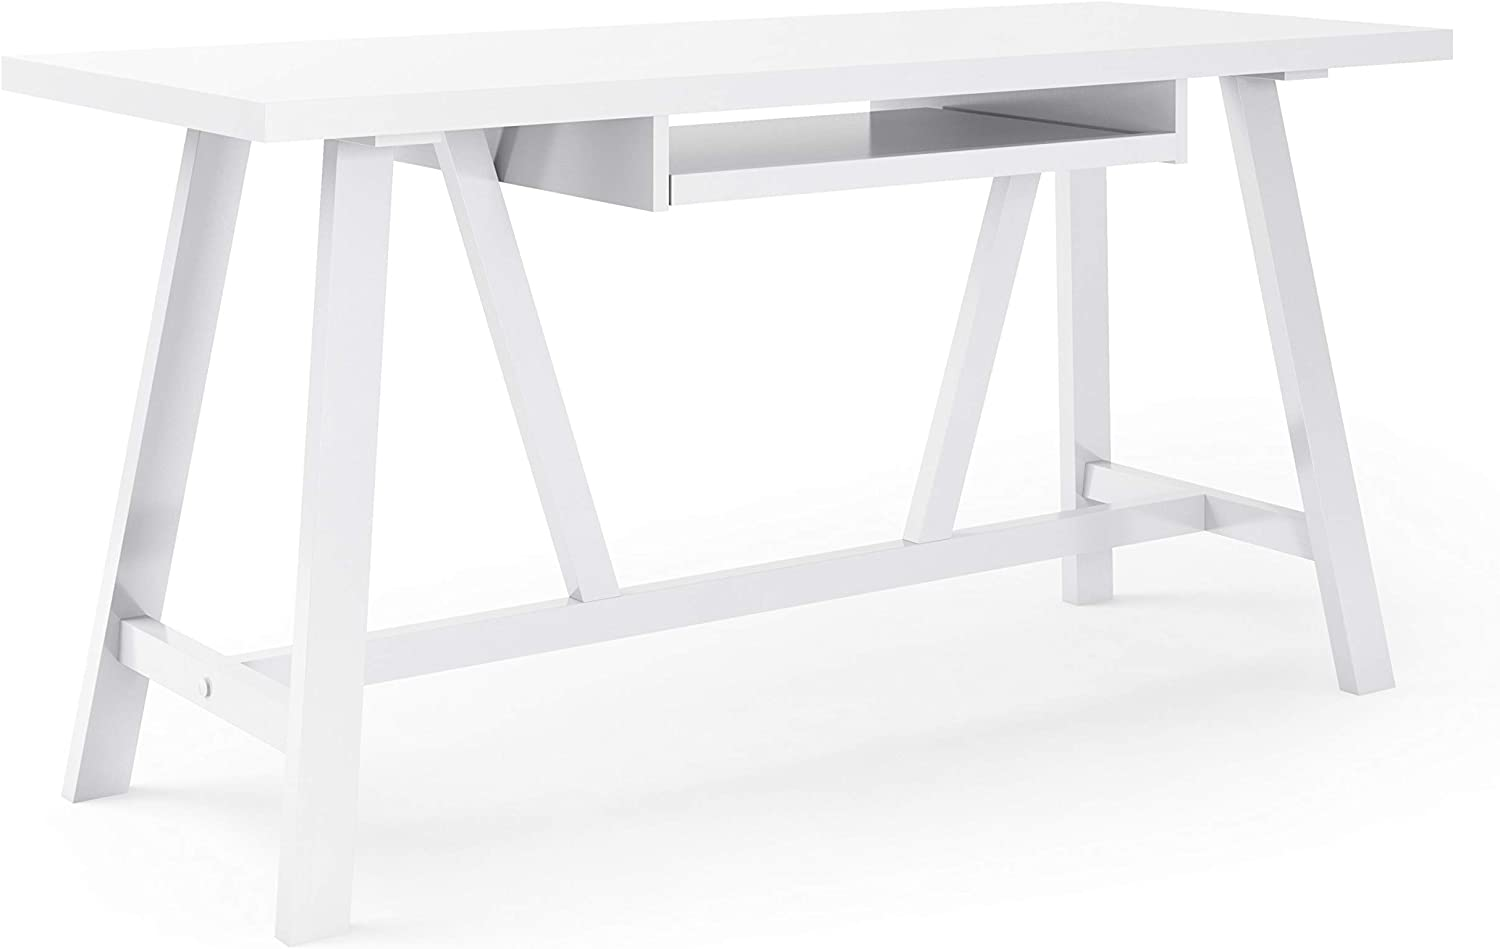 SIMPLIHOME Dylan SOLID WOOD Modern Industrial 60 inch Wide Home Office Desk, Writing Table, Workstation, Study Table Furniture in White